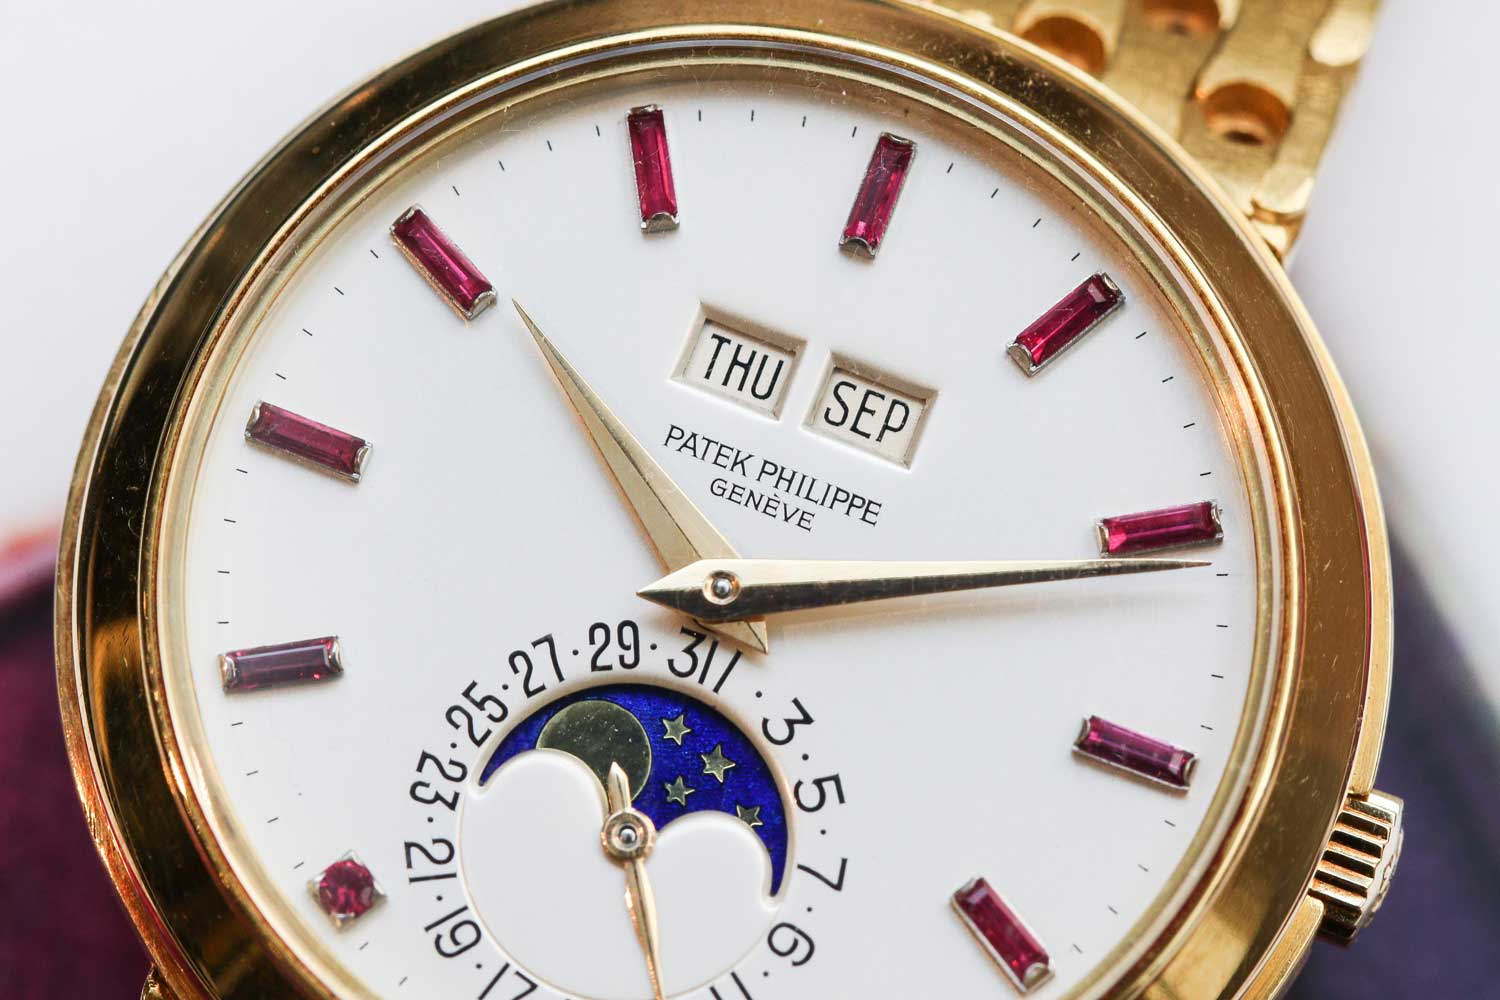 The case was modified to accommodate the raised ruby hour markers (©Revolution)